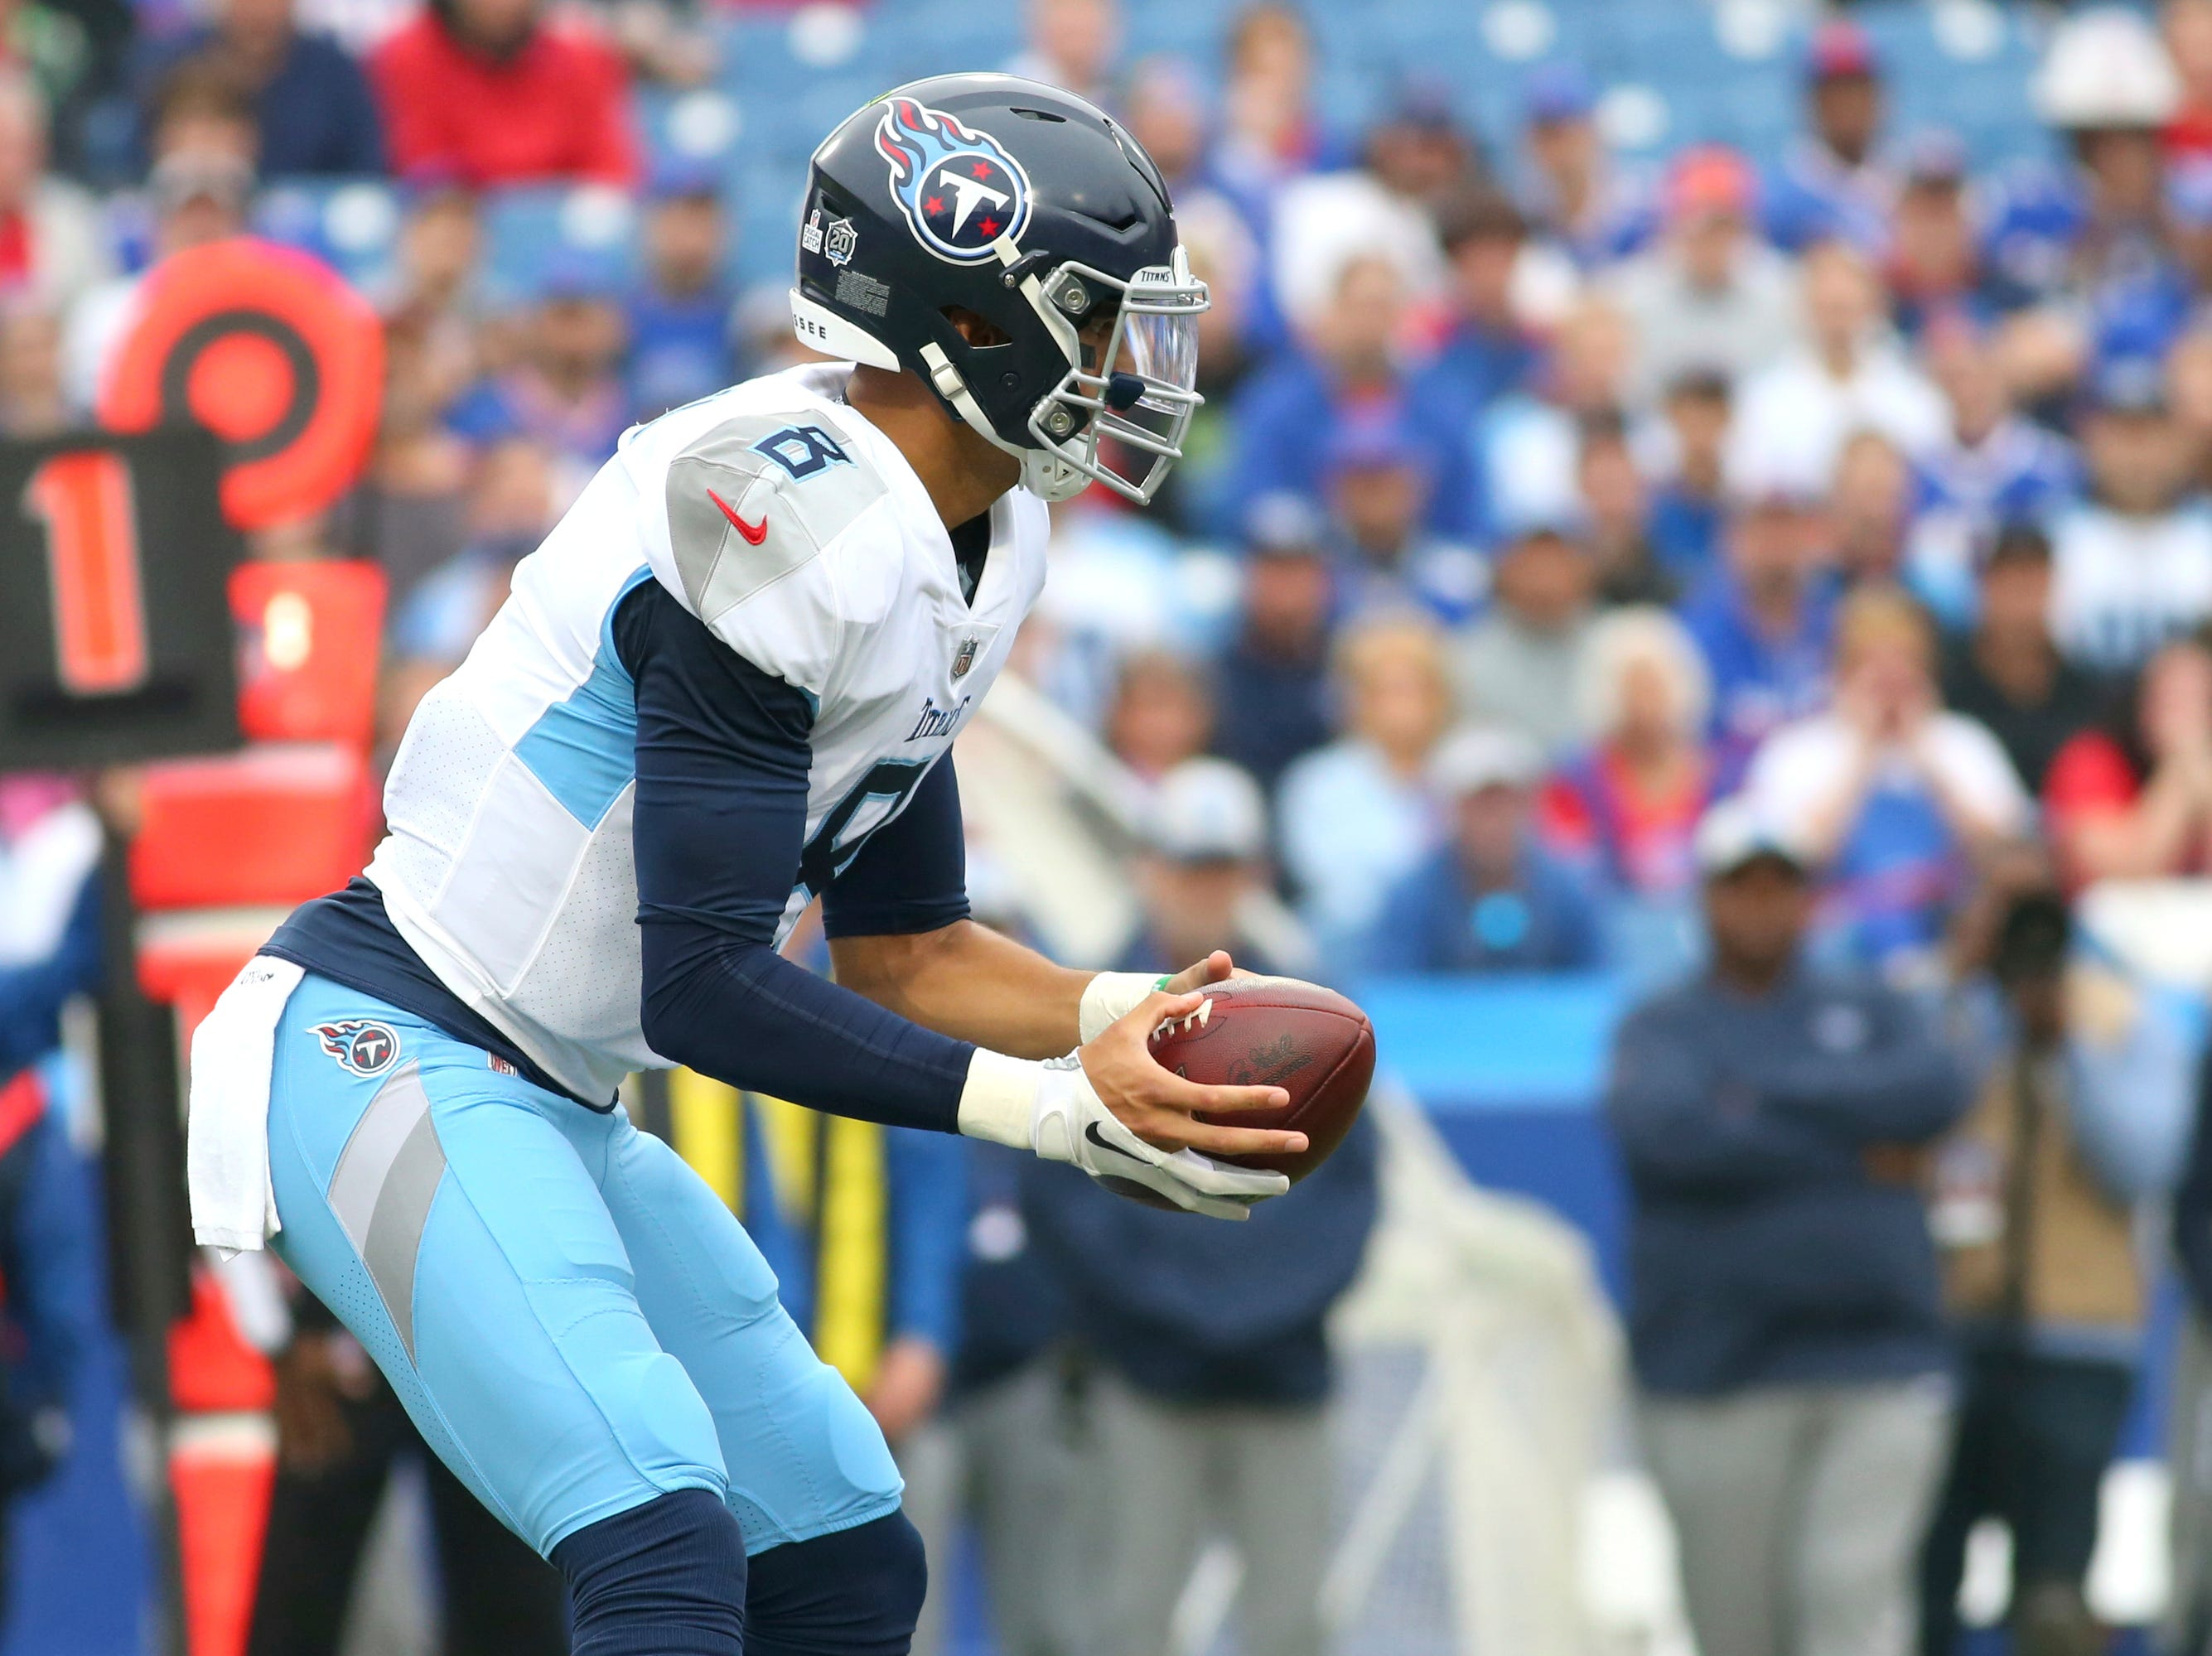 Tennessee Titans quarterback Marcus Mariota takes the first snap of the game during the first half of NFL football game against the Buffalo Bills, Sunday, Oct. 7, 2018, in Orchard Park, N.Y.